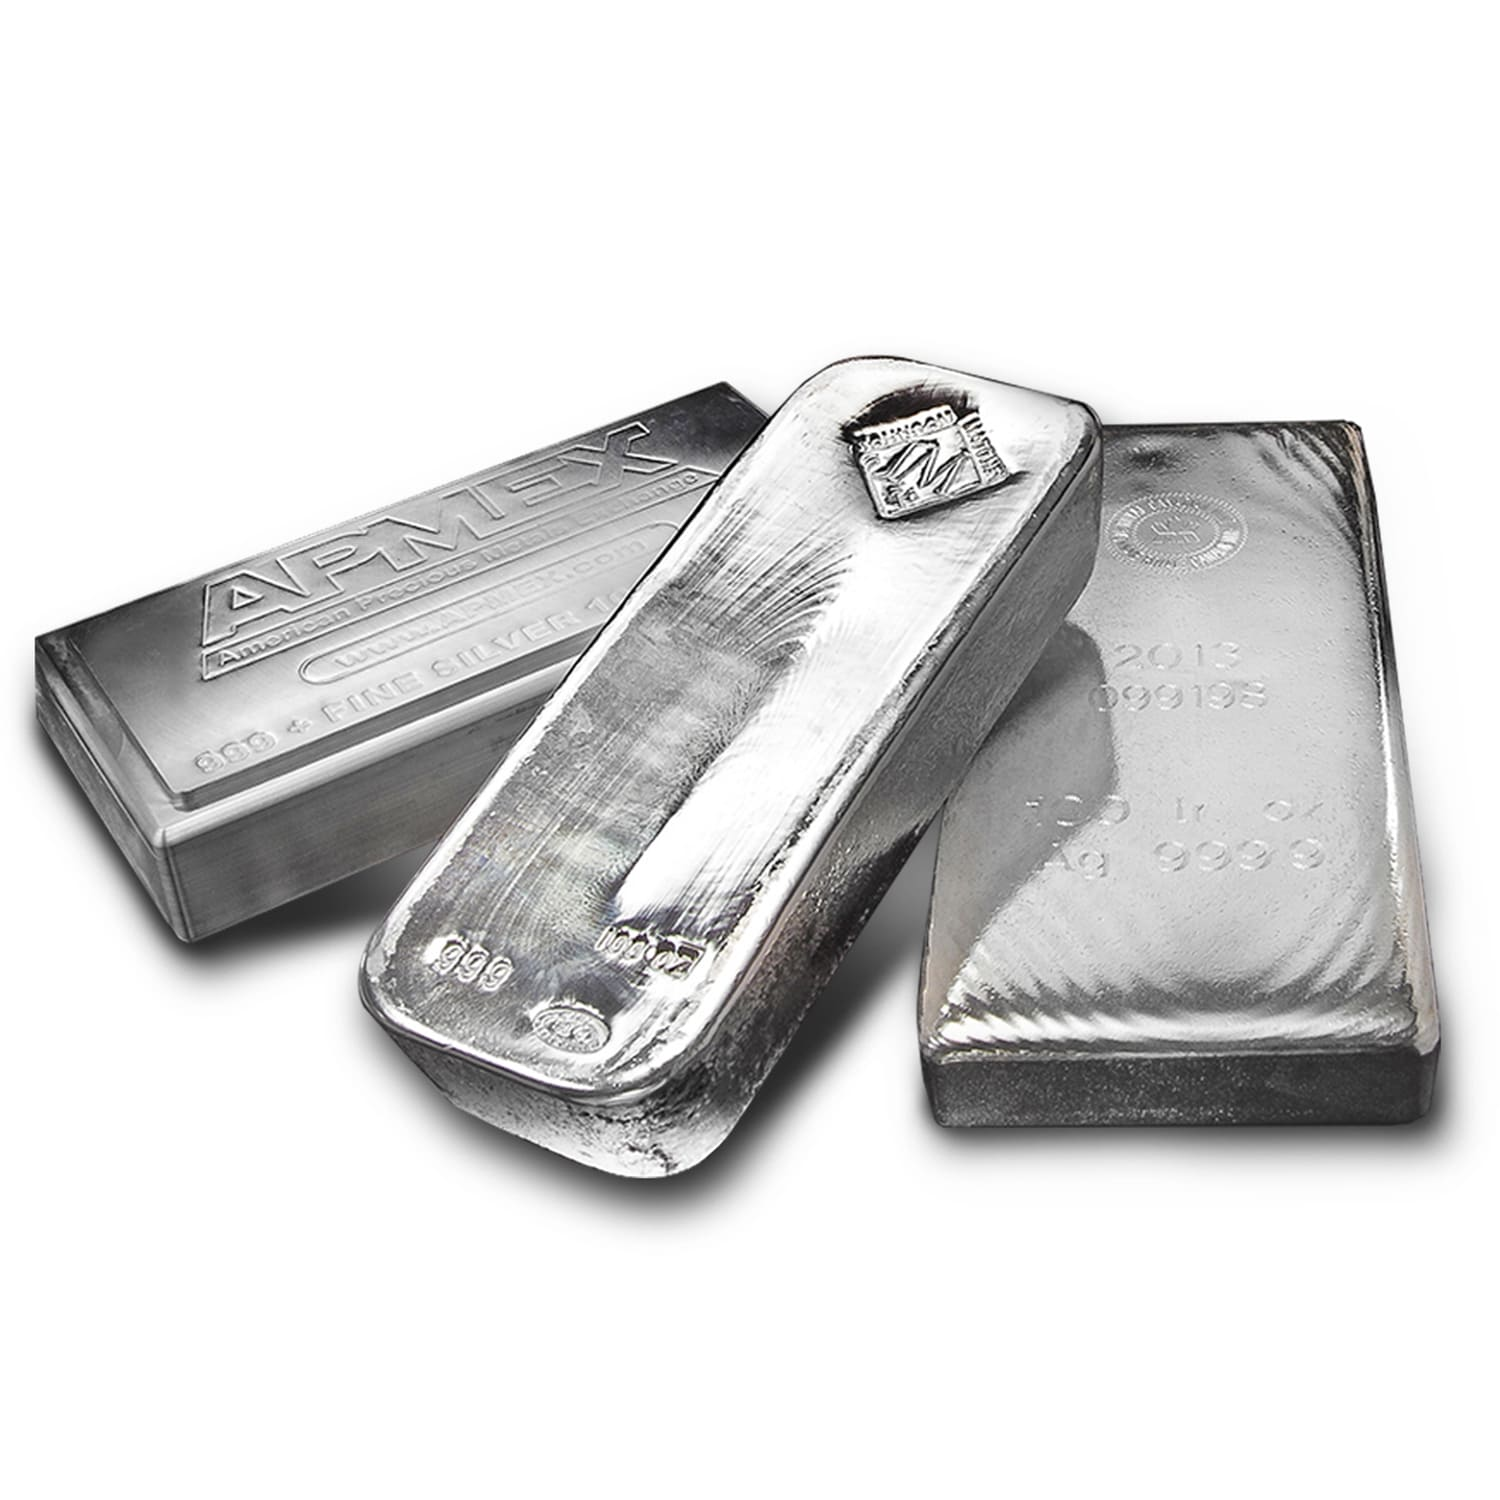 98.20 oz Silver Bar - Secondary Market